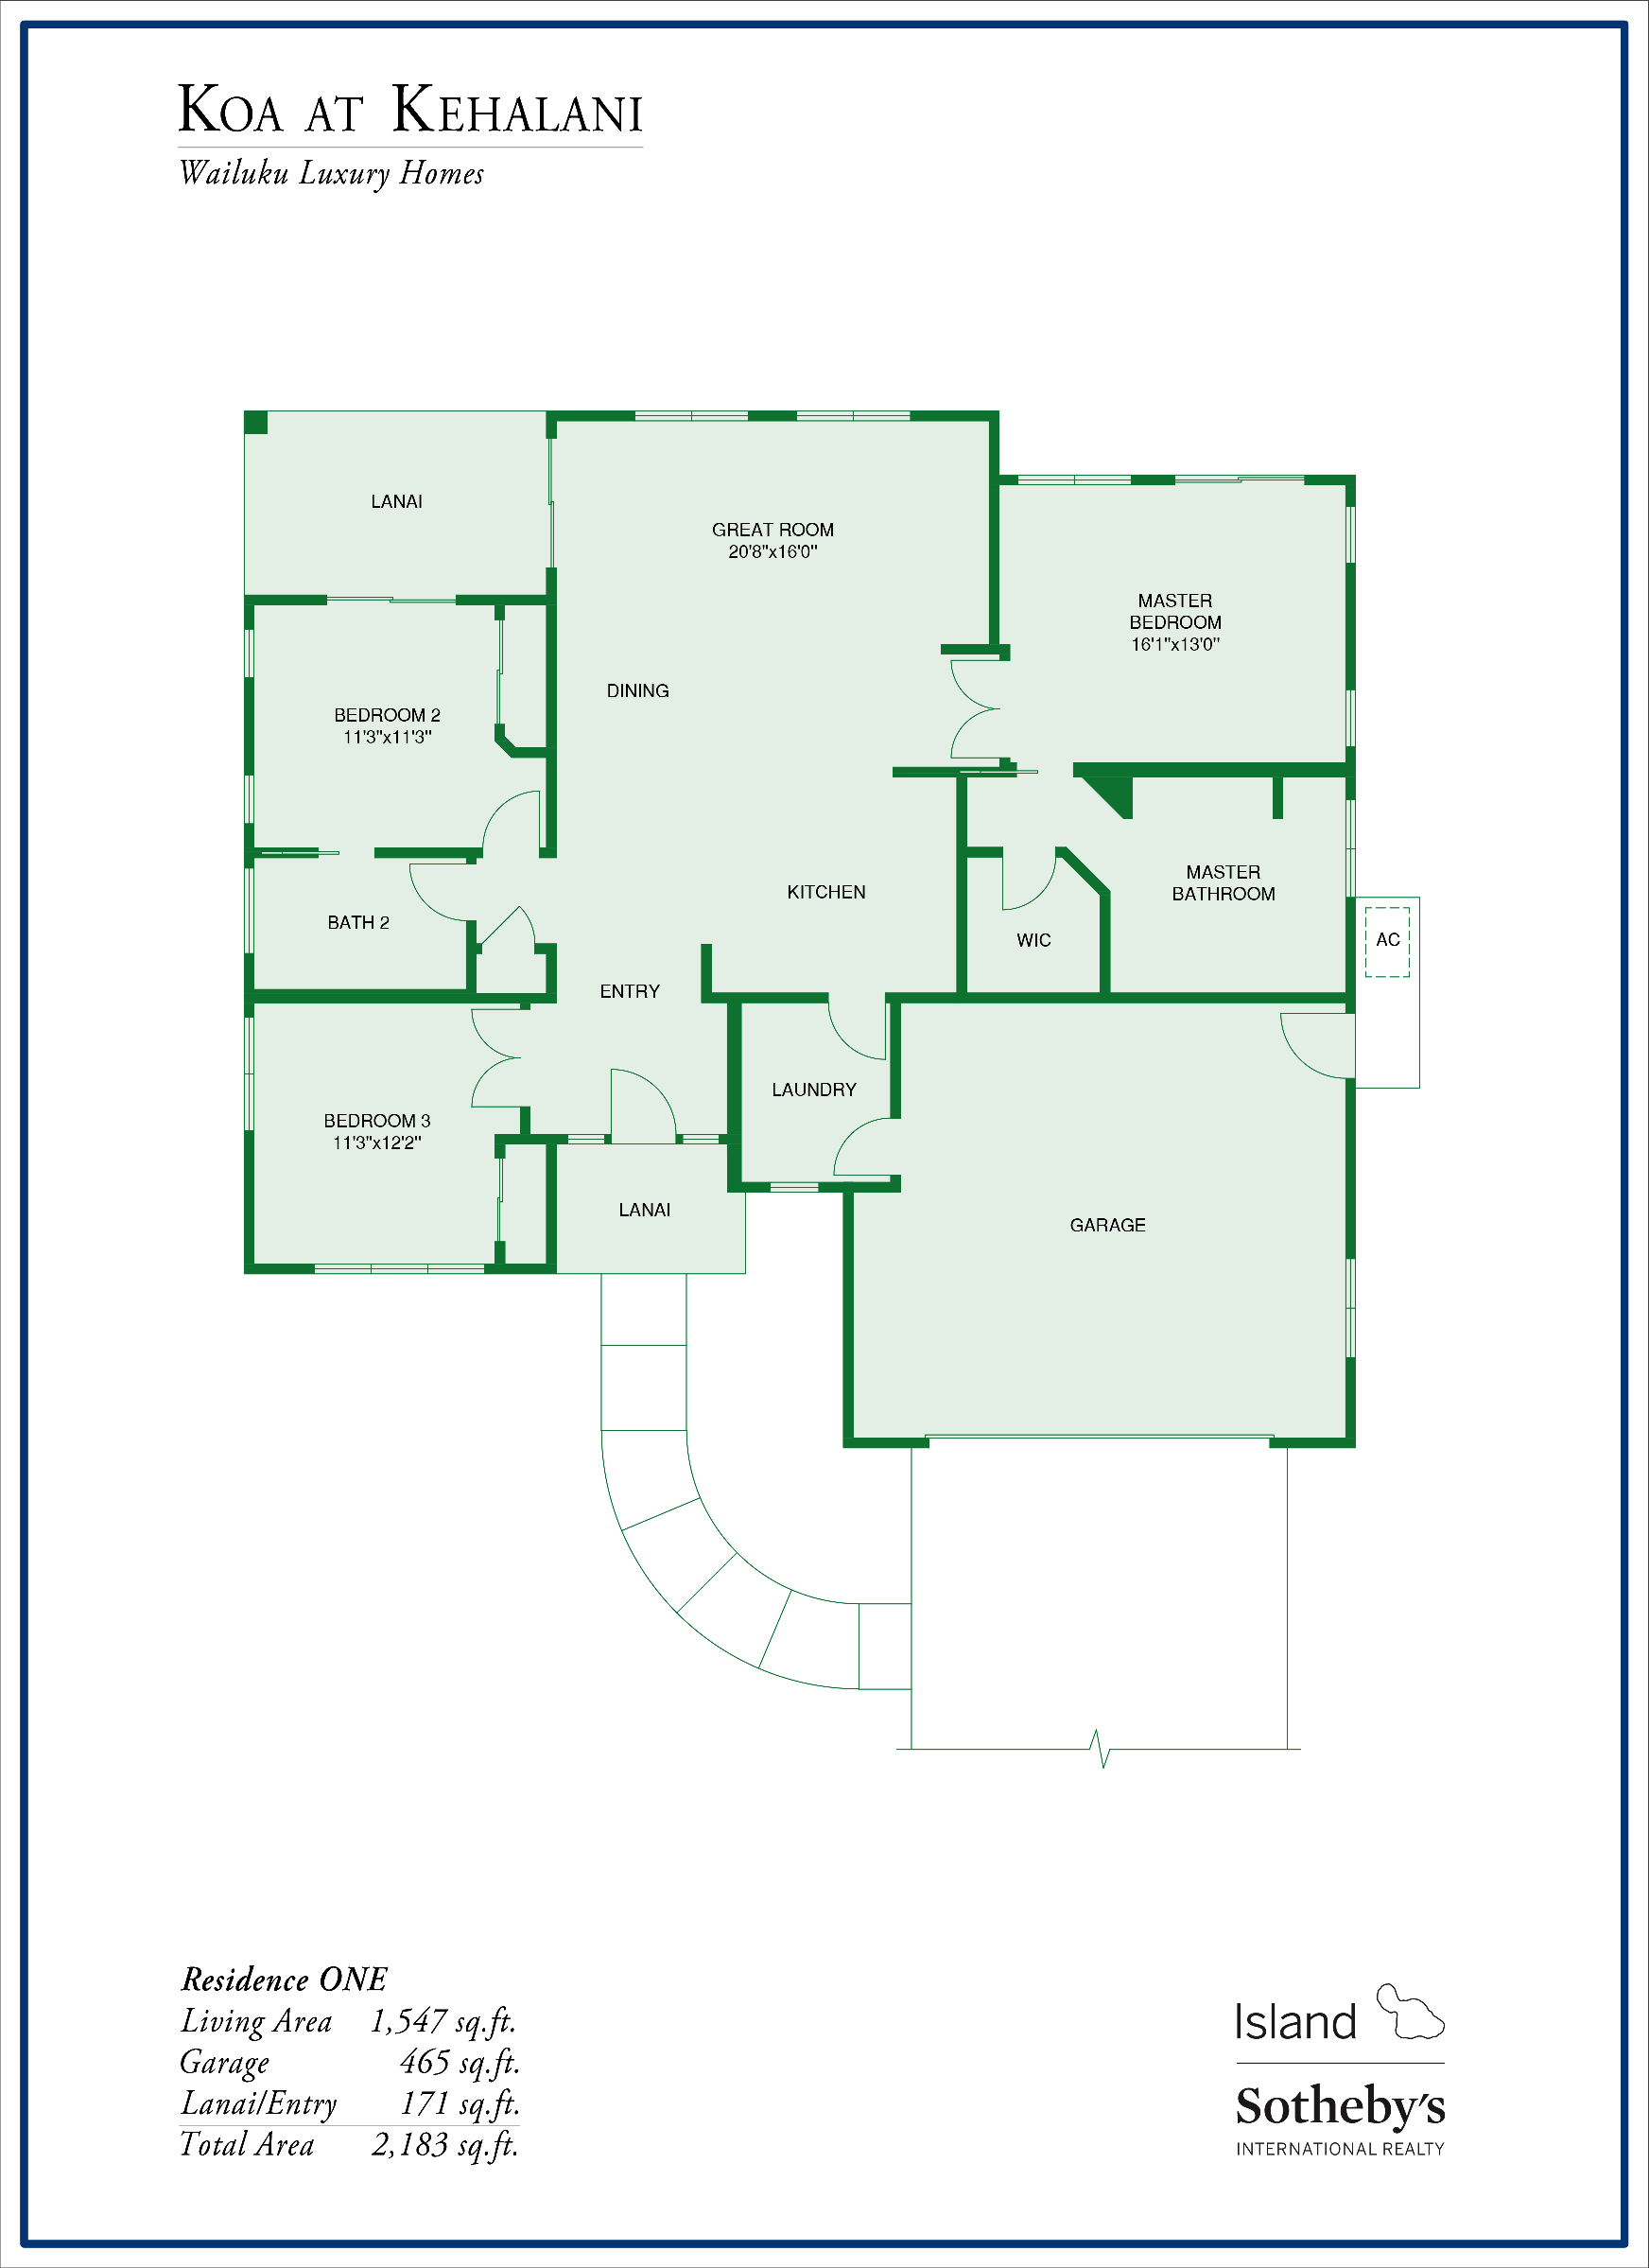 floor plan koa at kehalani